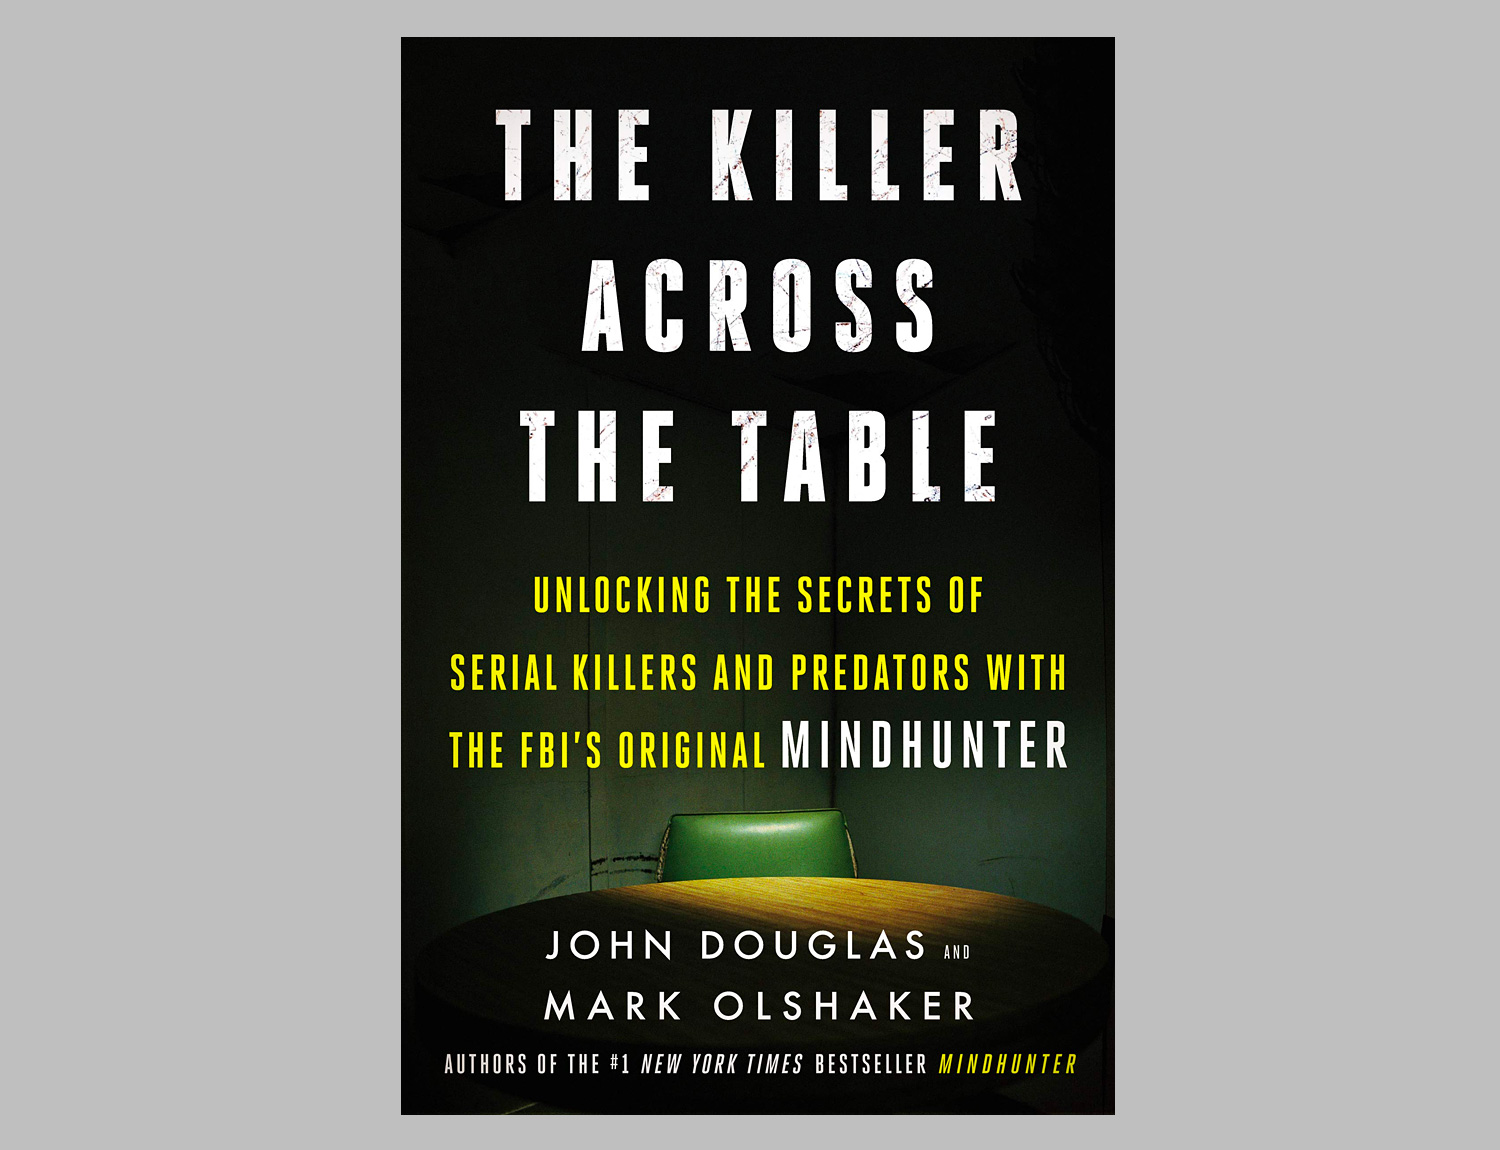 The Killer Across the Table: Unlocking the Secrets of Serial Killers and Predators at werd.com